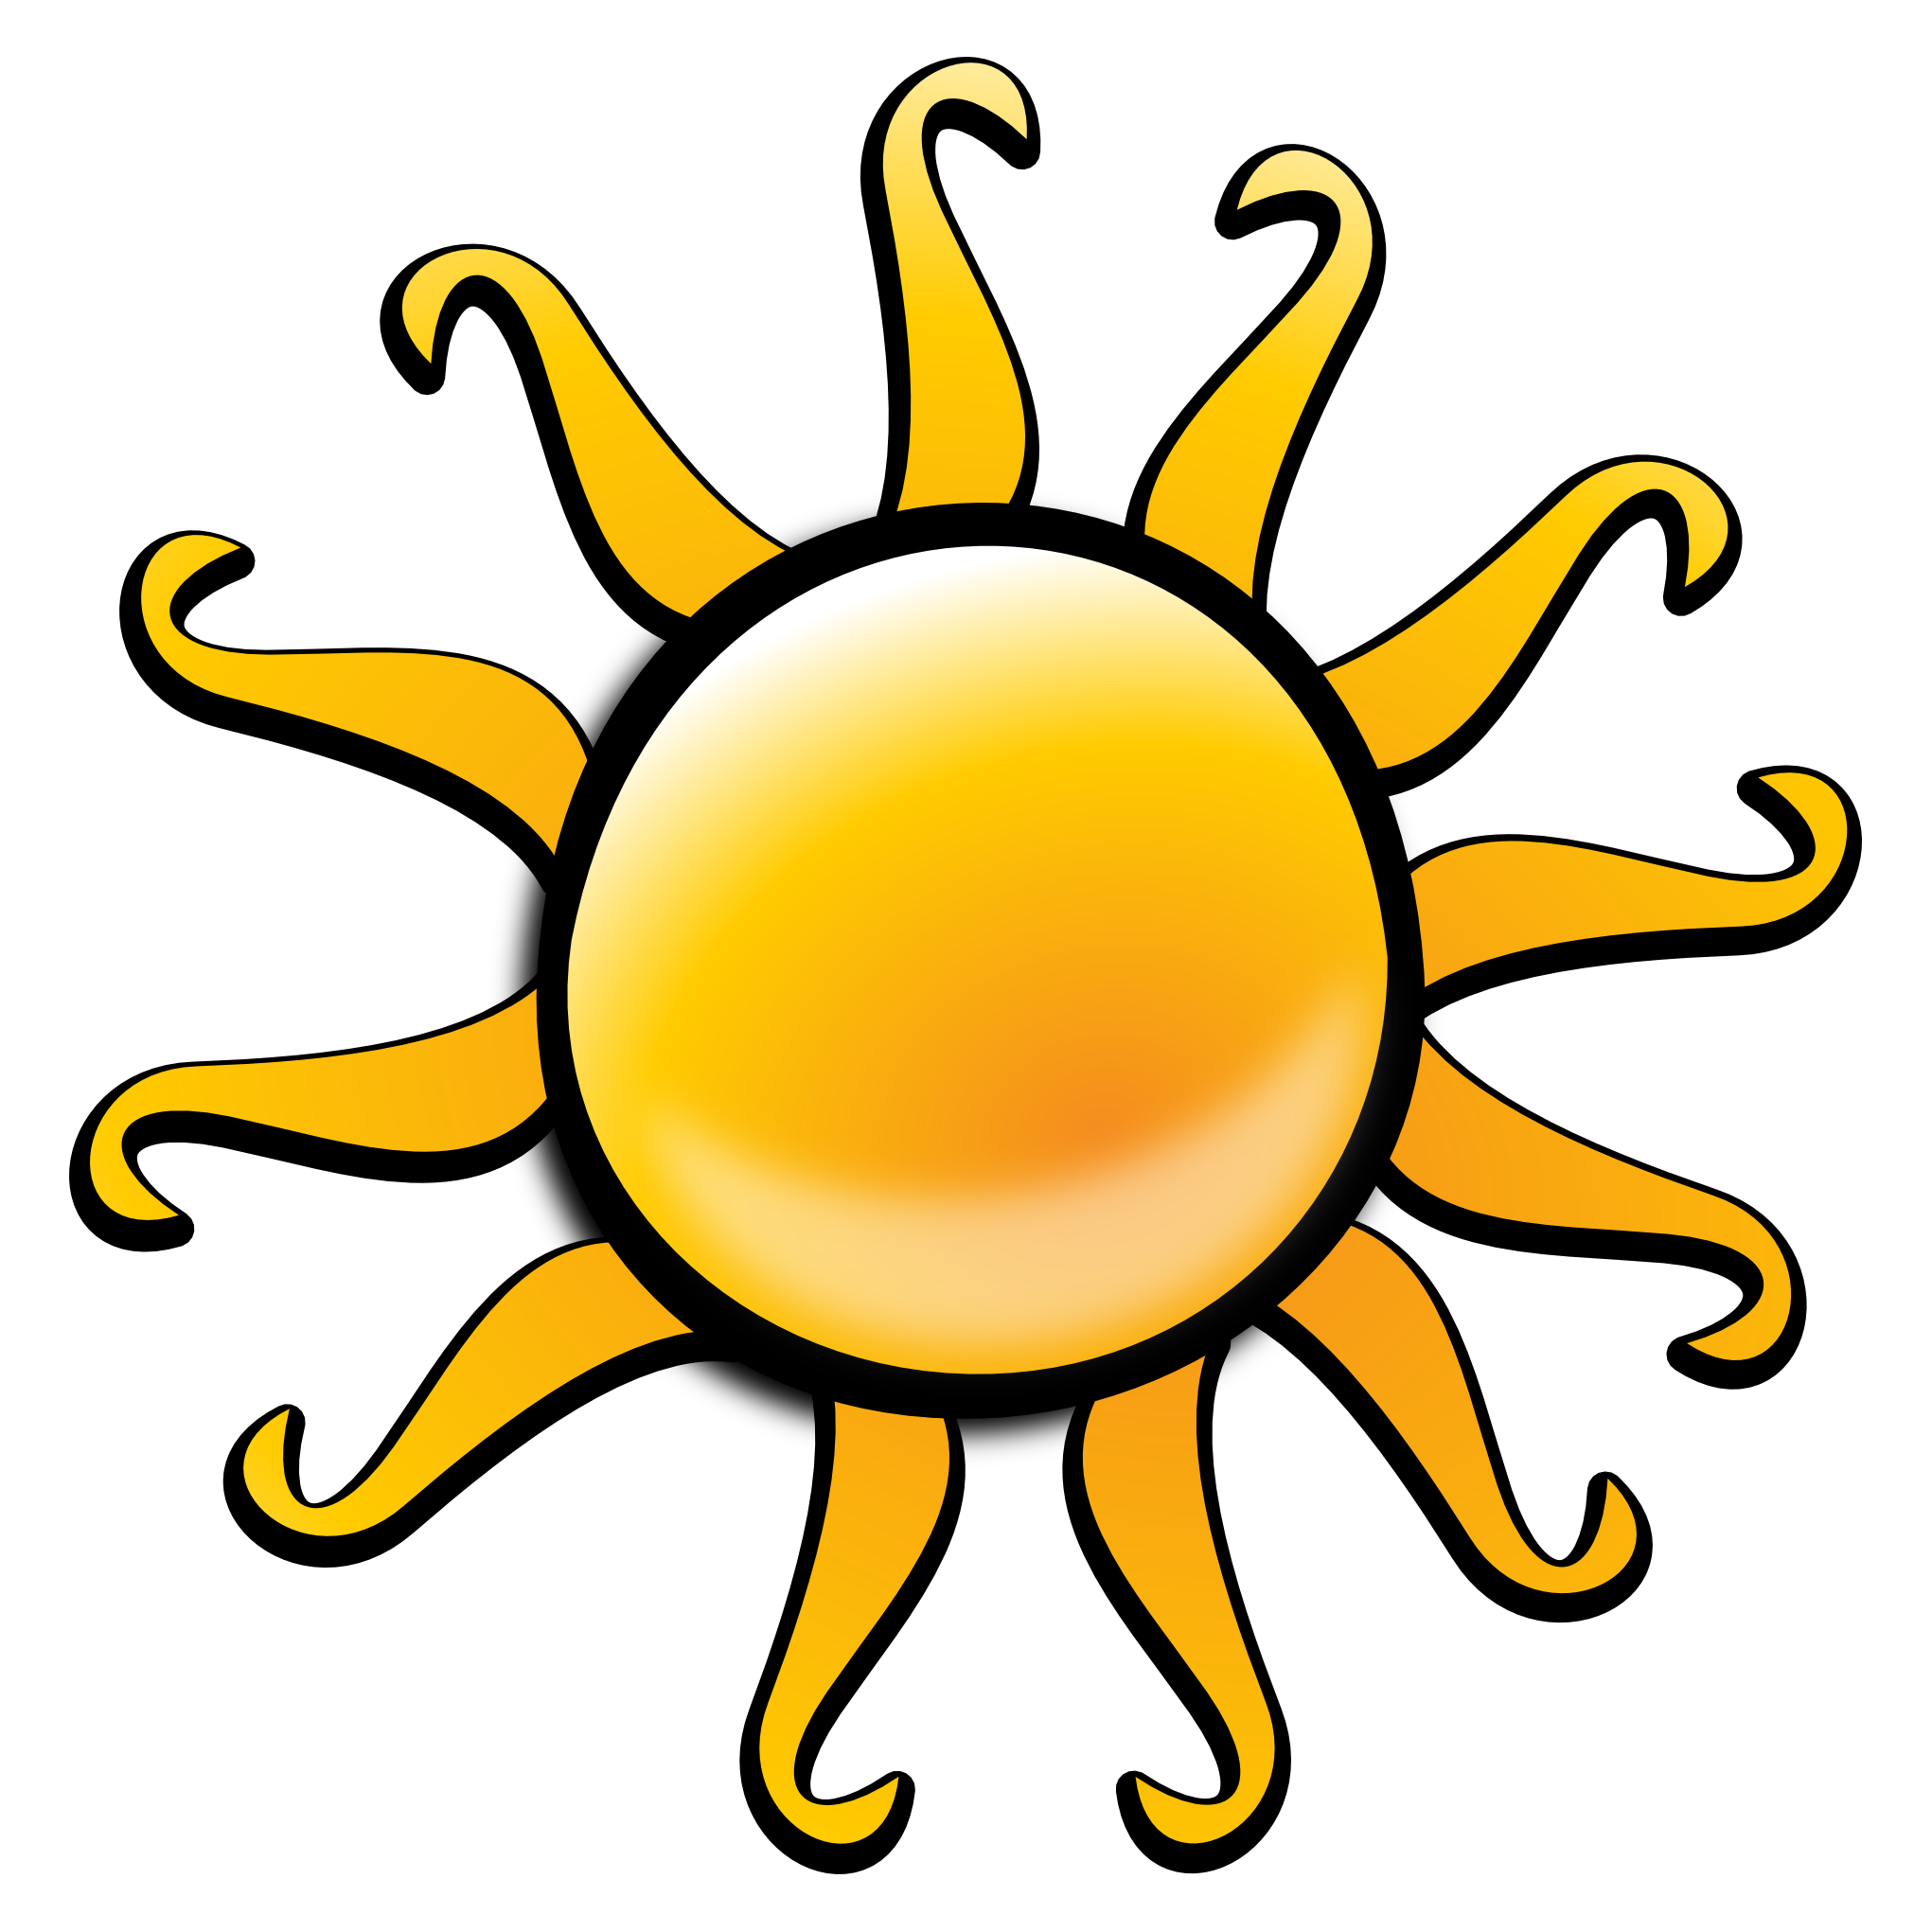 Sun PNG Image